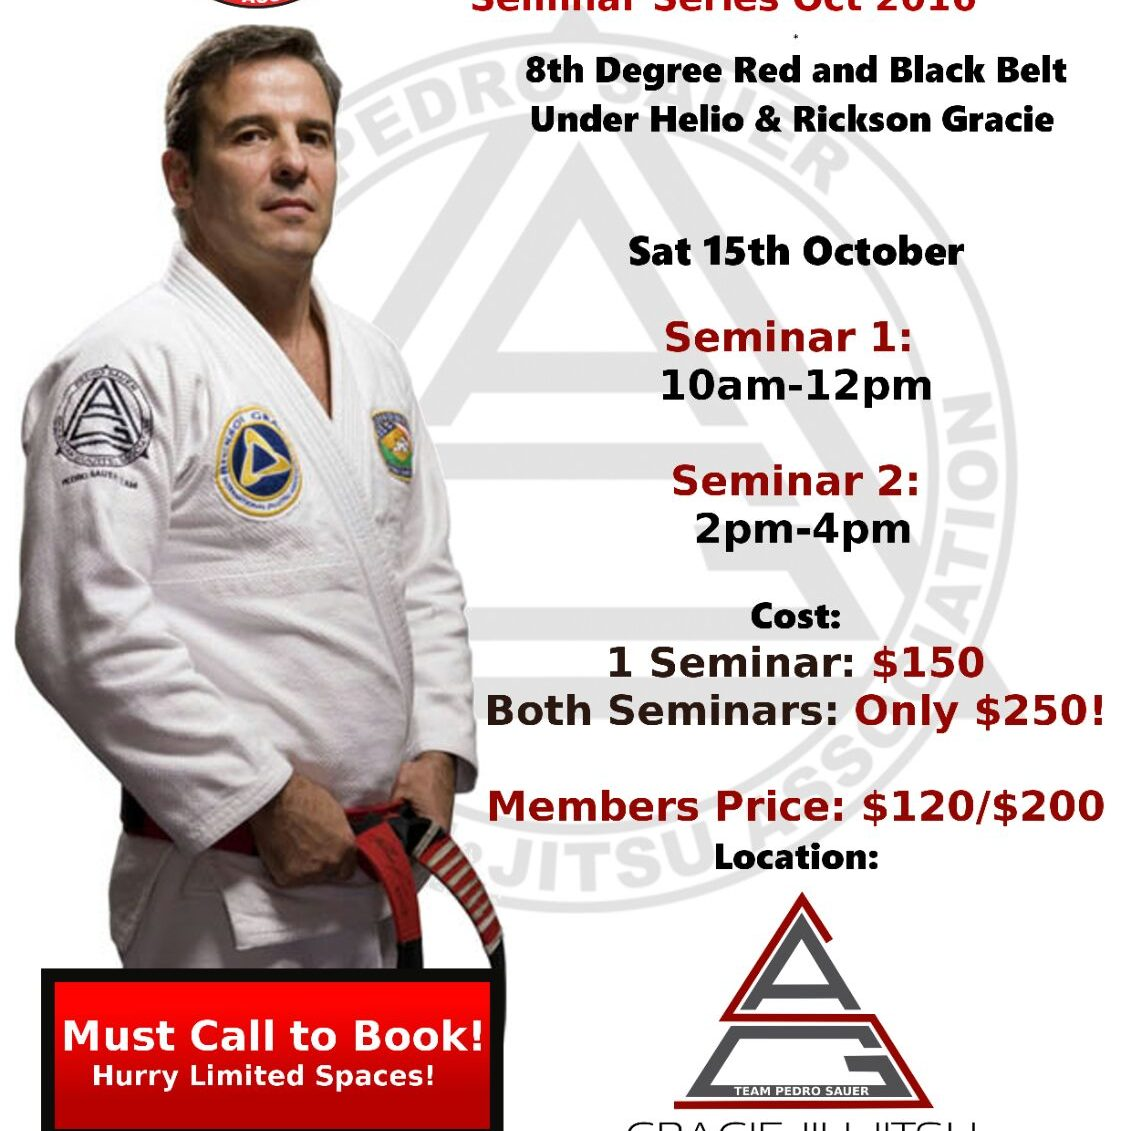 Rare Opportunity to Train with the Best: Pedro Sauer Seminar